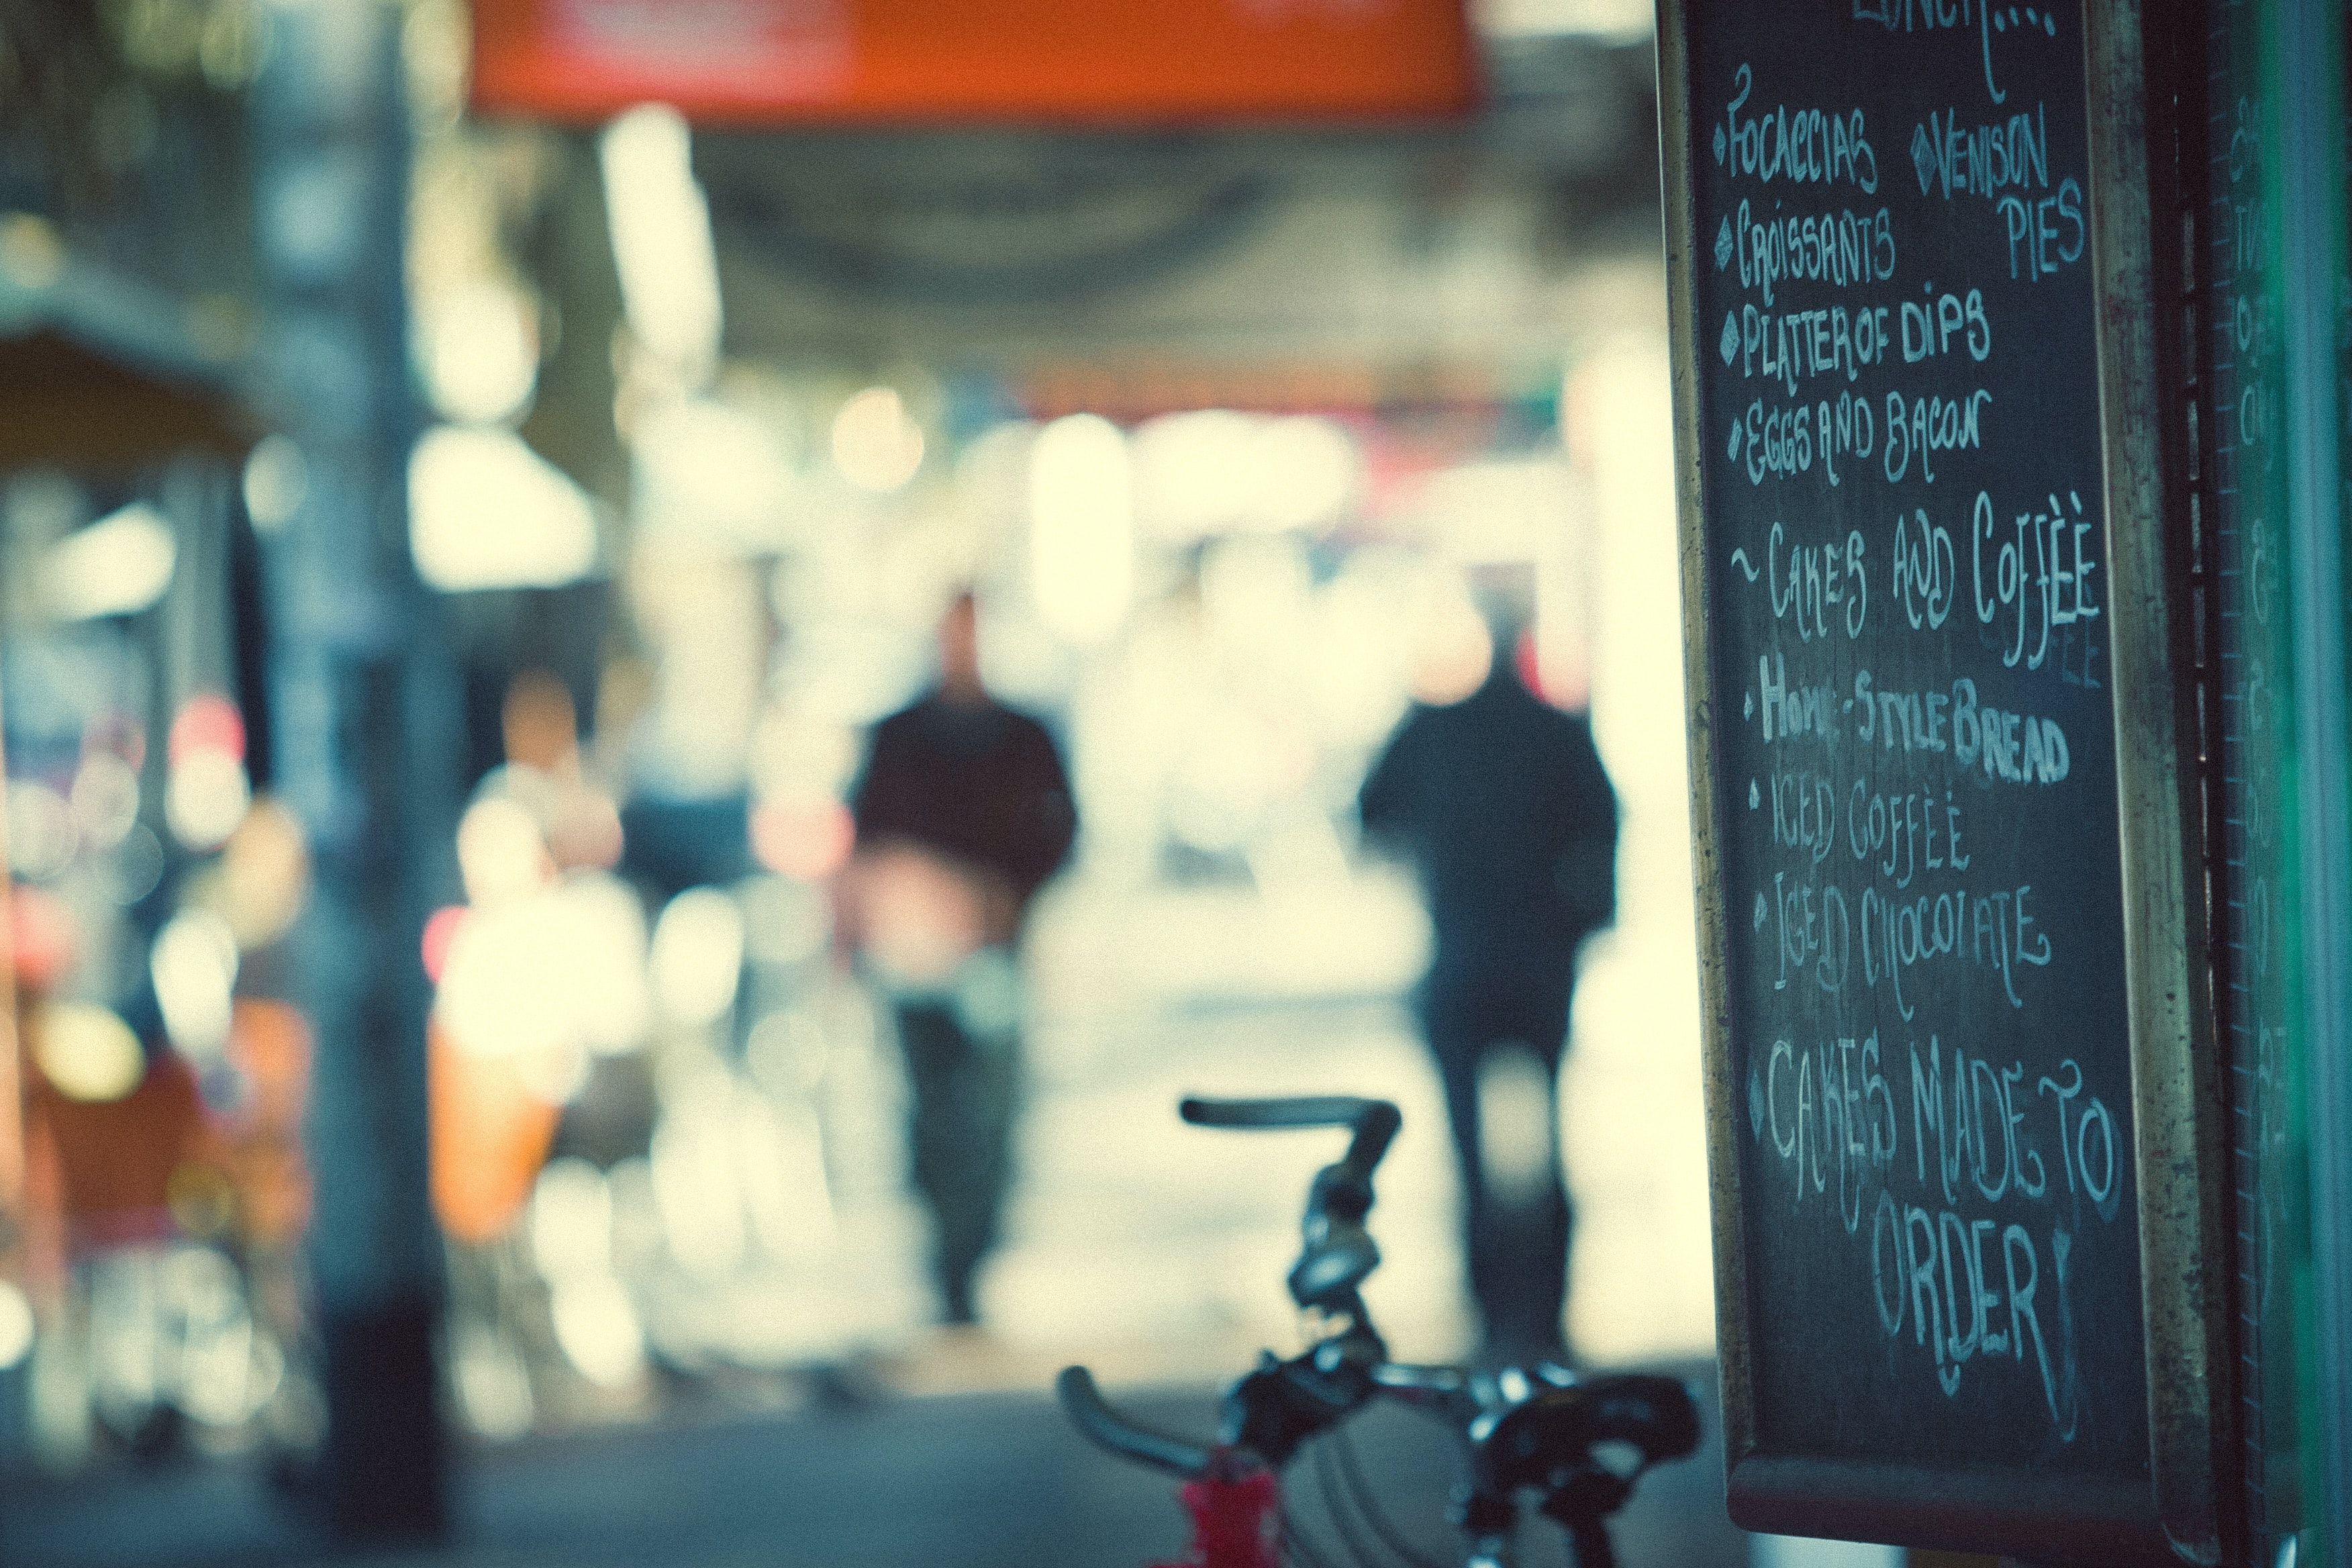 A menu is written on a chalkboard hanging outside of a cafe on the street